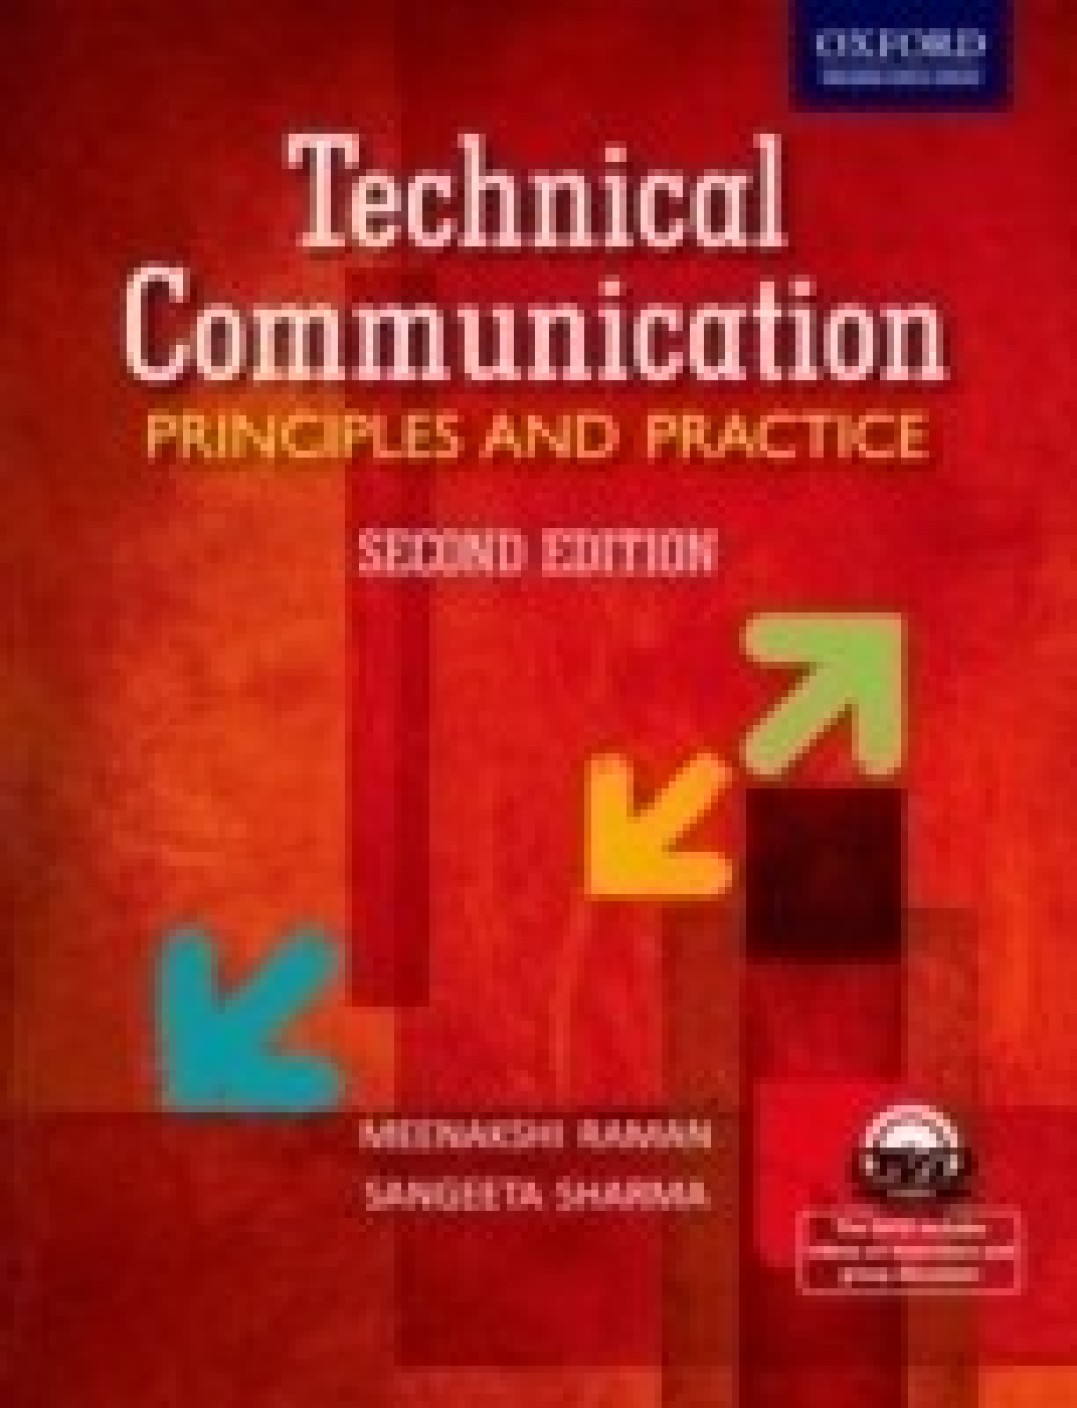 technical communication methods and practices Assistant professor of technical communication at mercer university  focus on  measuring and improving technical communication methods and practices.